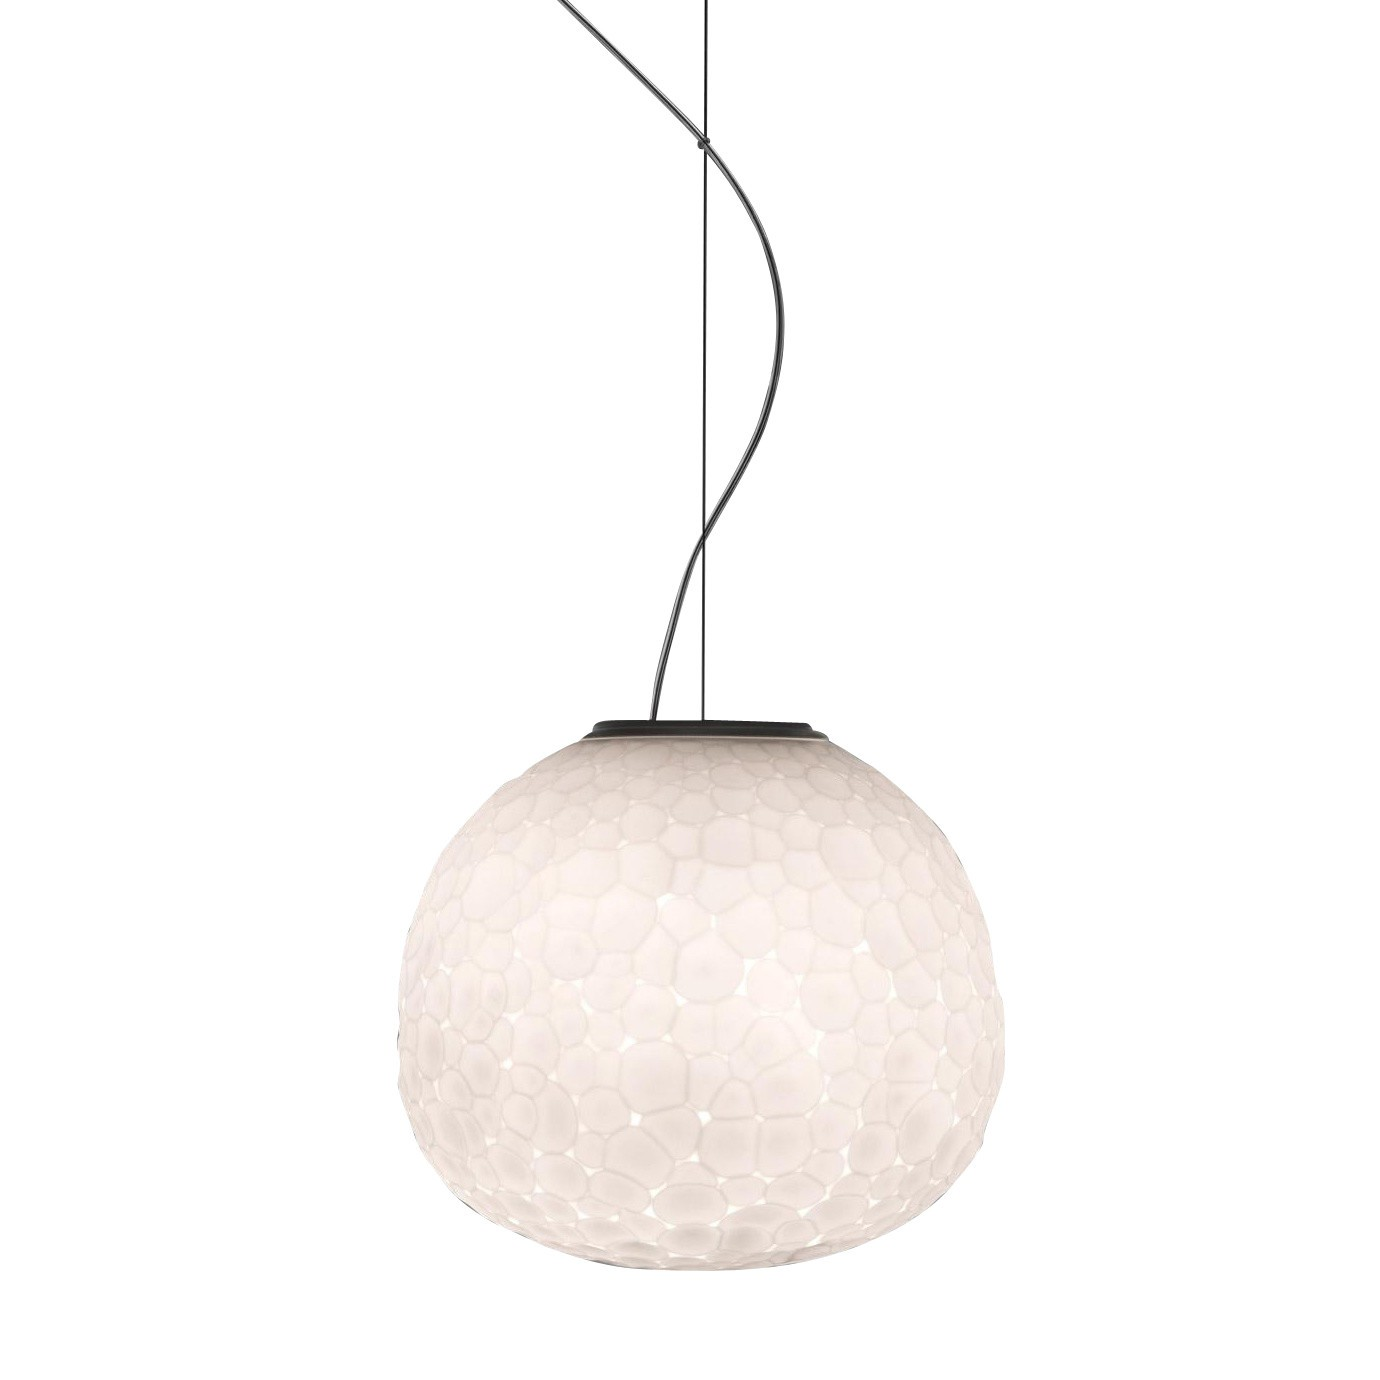 Artemide Suspension Meteorite Sospensione Suspension Lamp